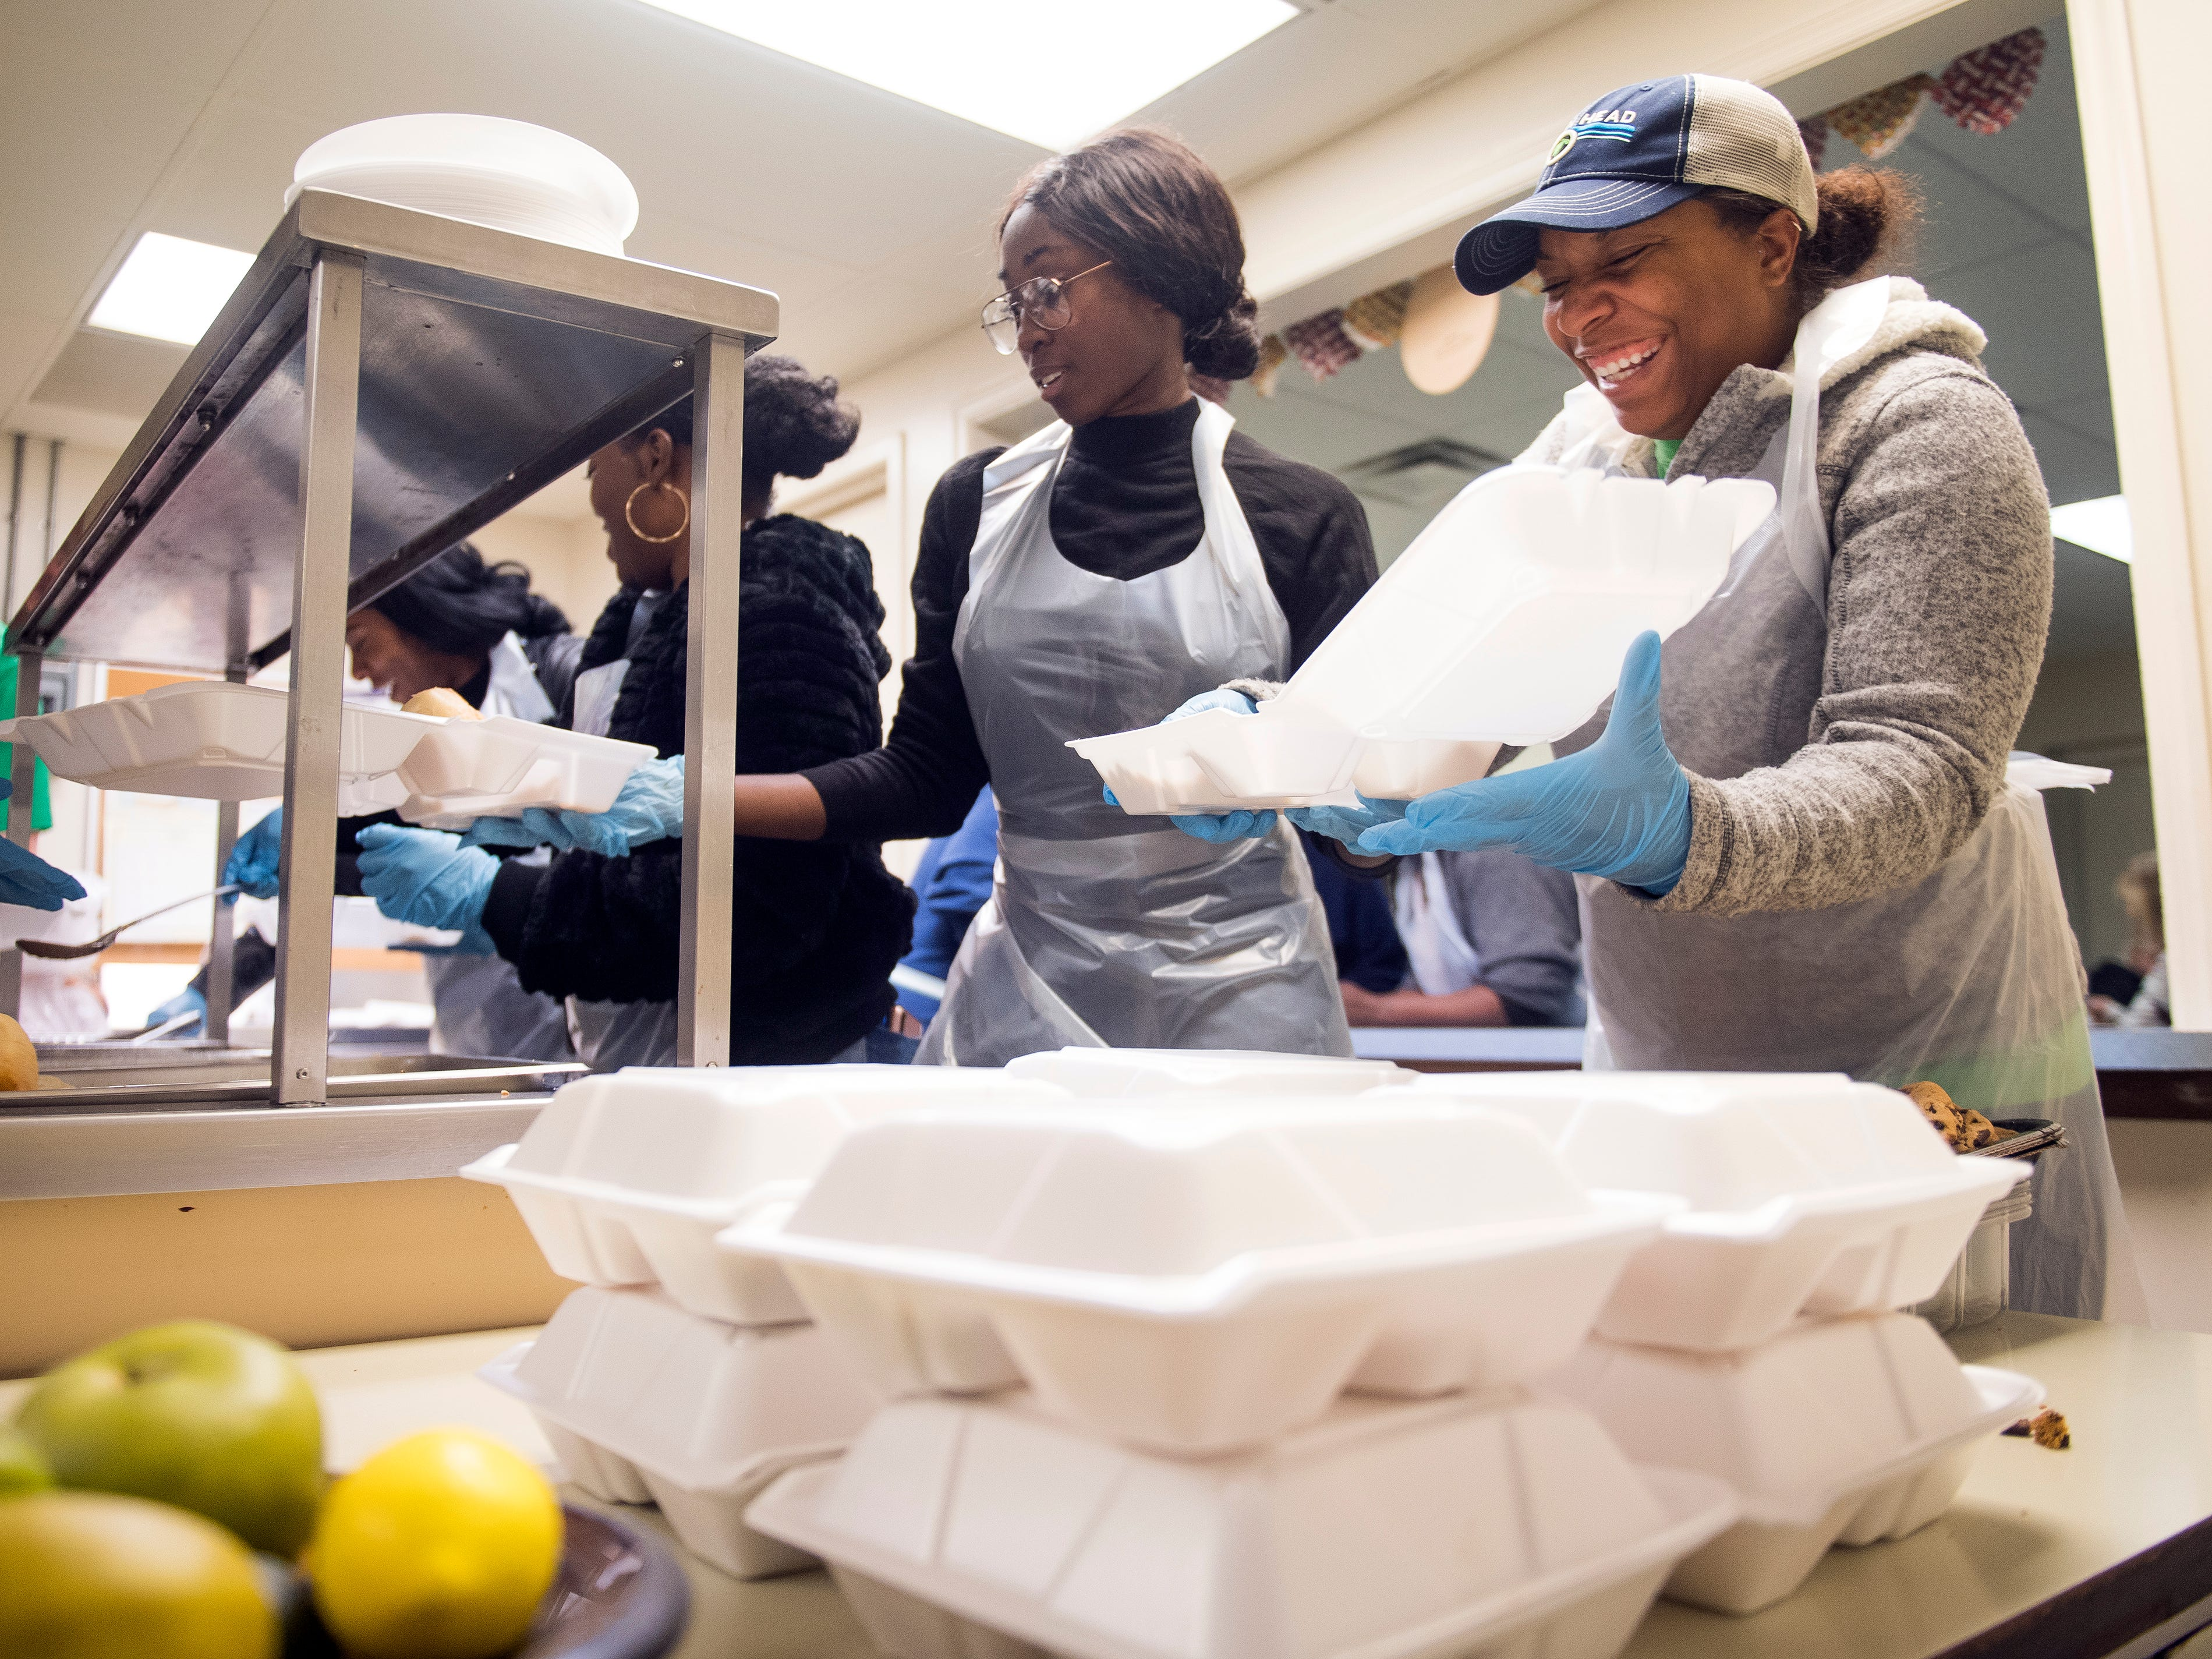 Kara Demonbreun, right, laughs as she helps prepare to-go boxes of food at The Love Kitchen in Knoxville on Wednesday, November 14, 2018. Demonbreun and multiple other Phi Delta Epsilon medical fraternity members from Ross University School of Medicine spent the afternoon volunteering at The Love Kitchen.